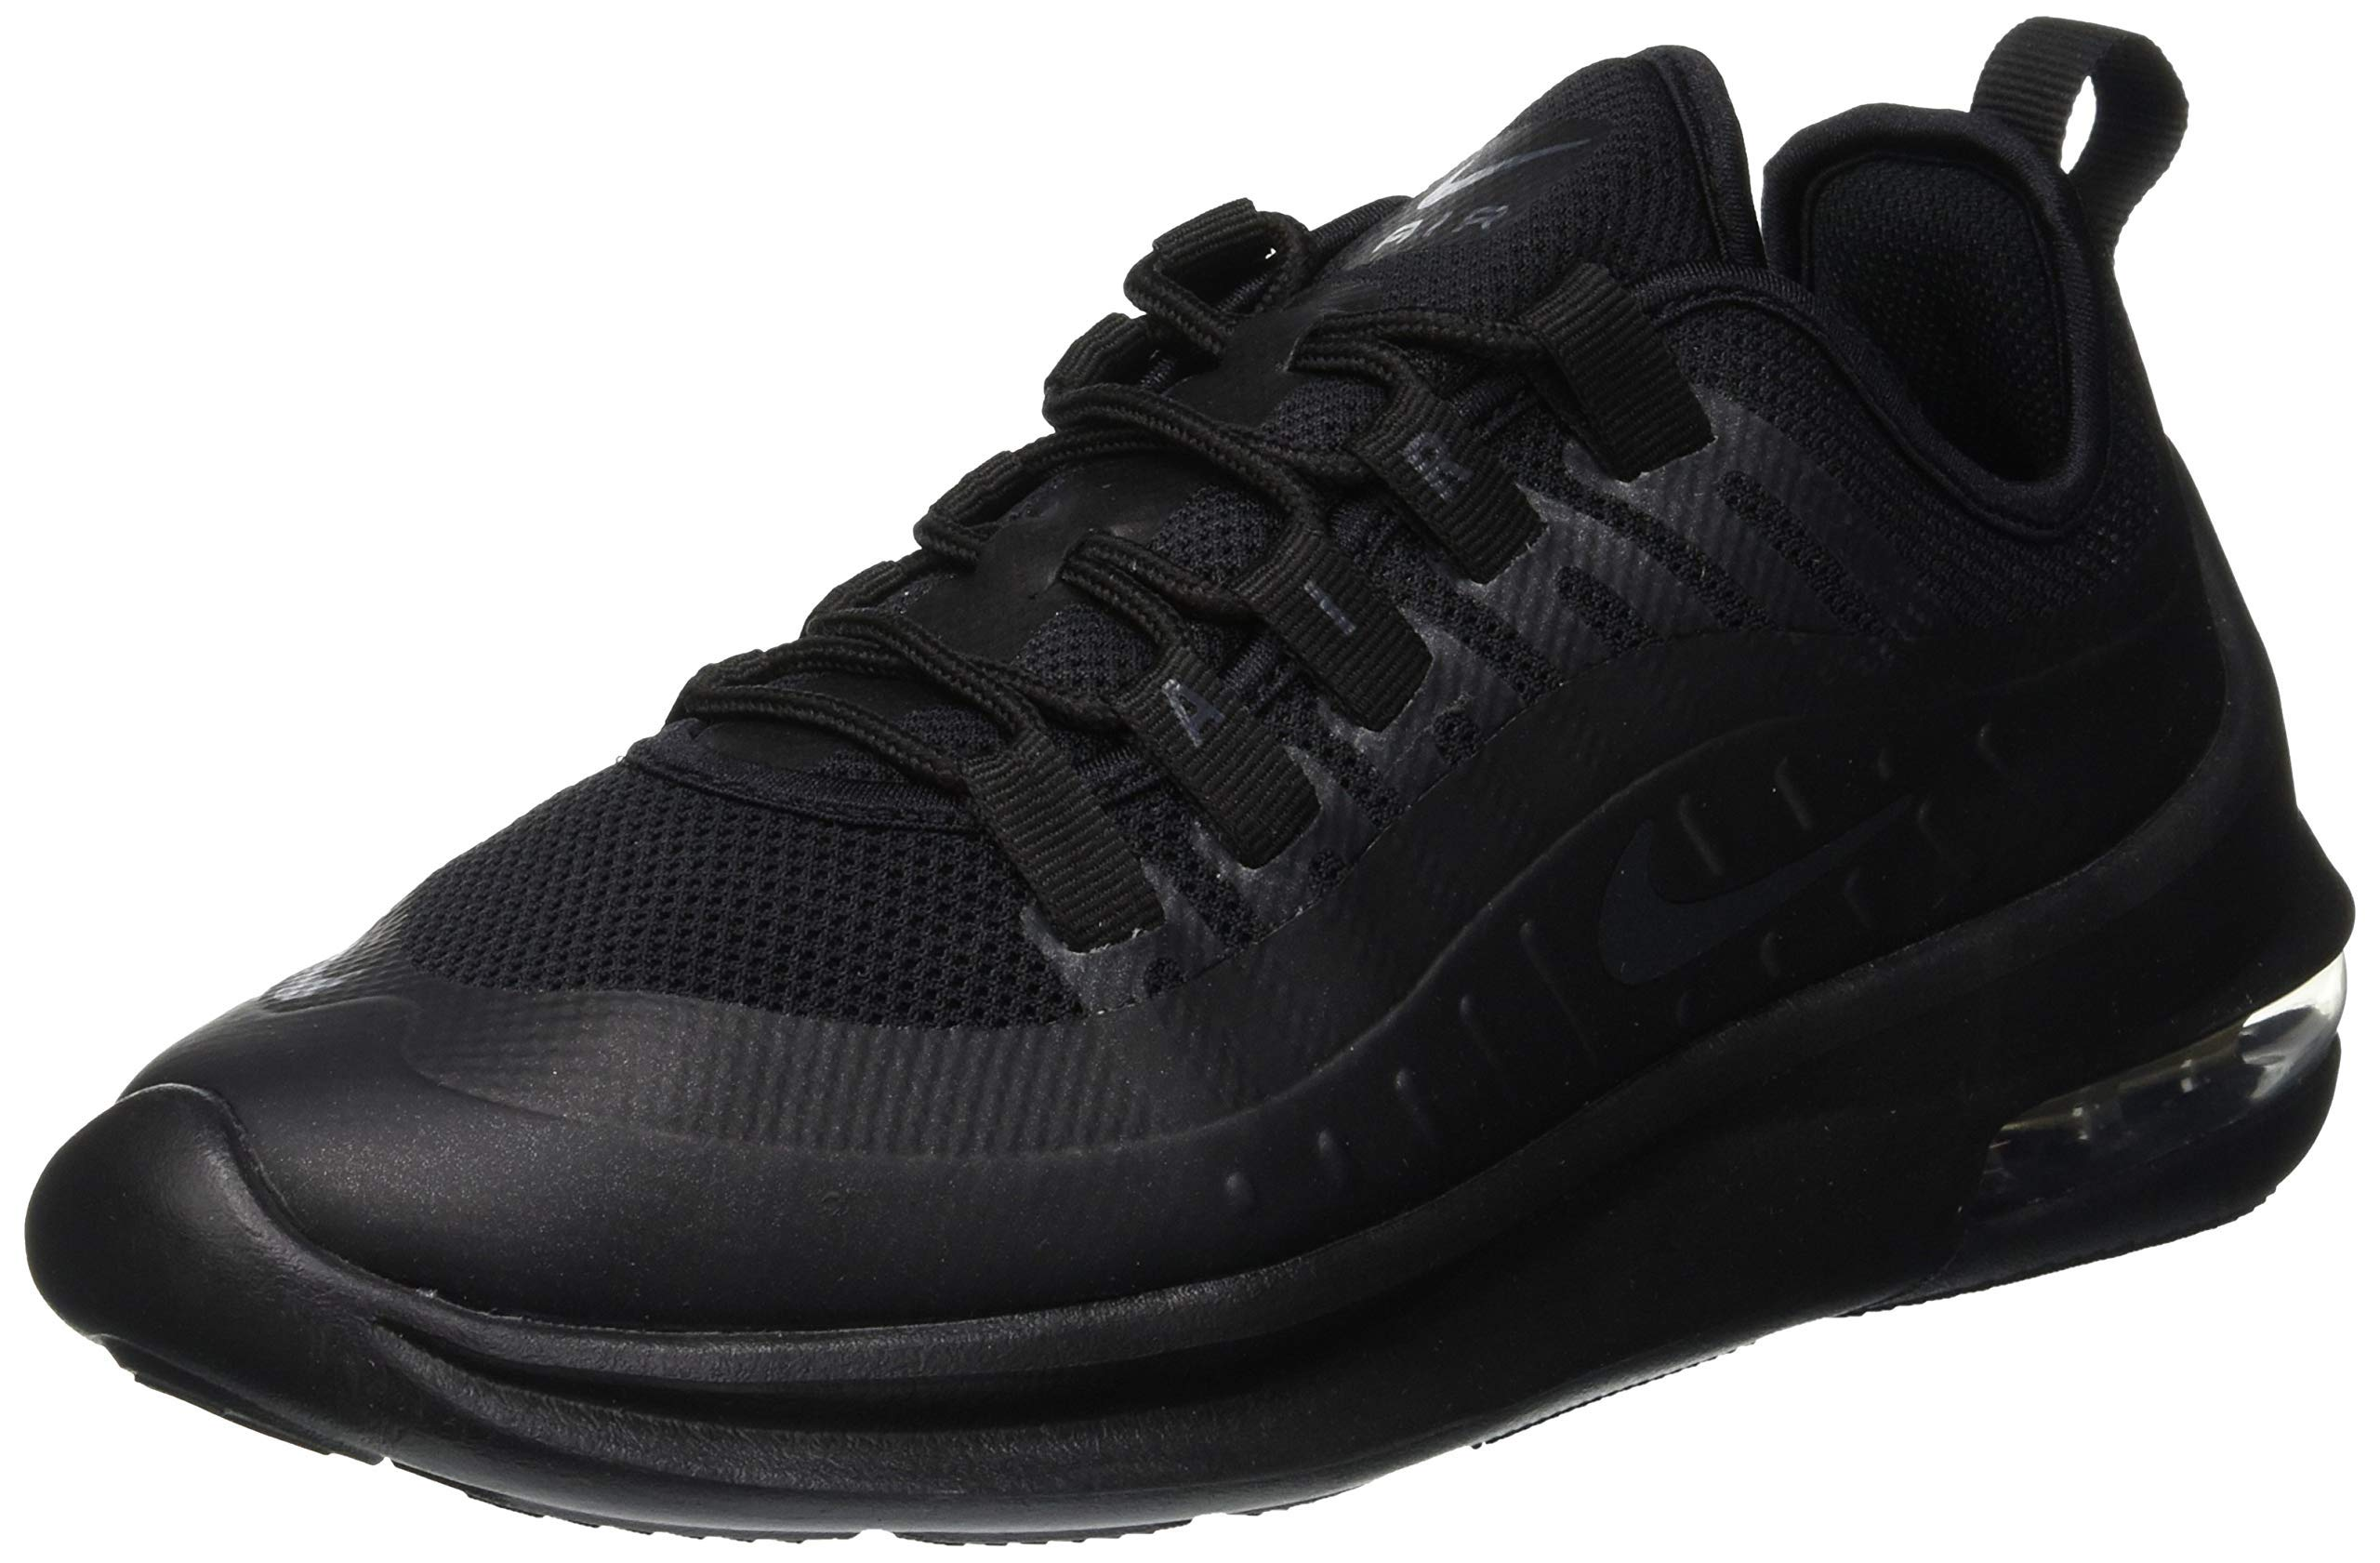 Nike Air Max Axis Womens Style: AA2168-006 Size: 5 Black/Anthracite